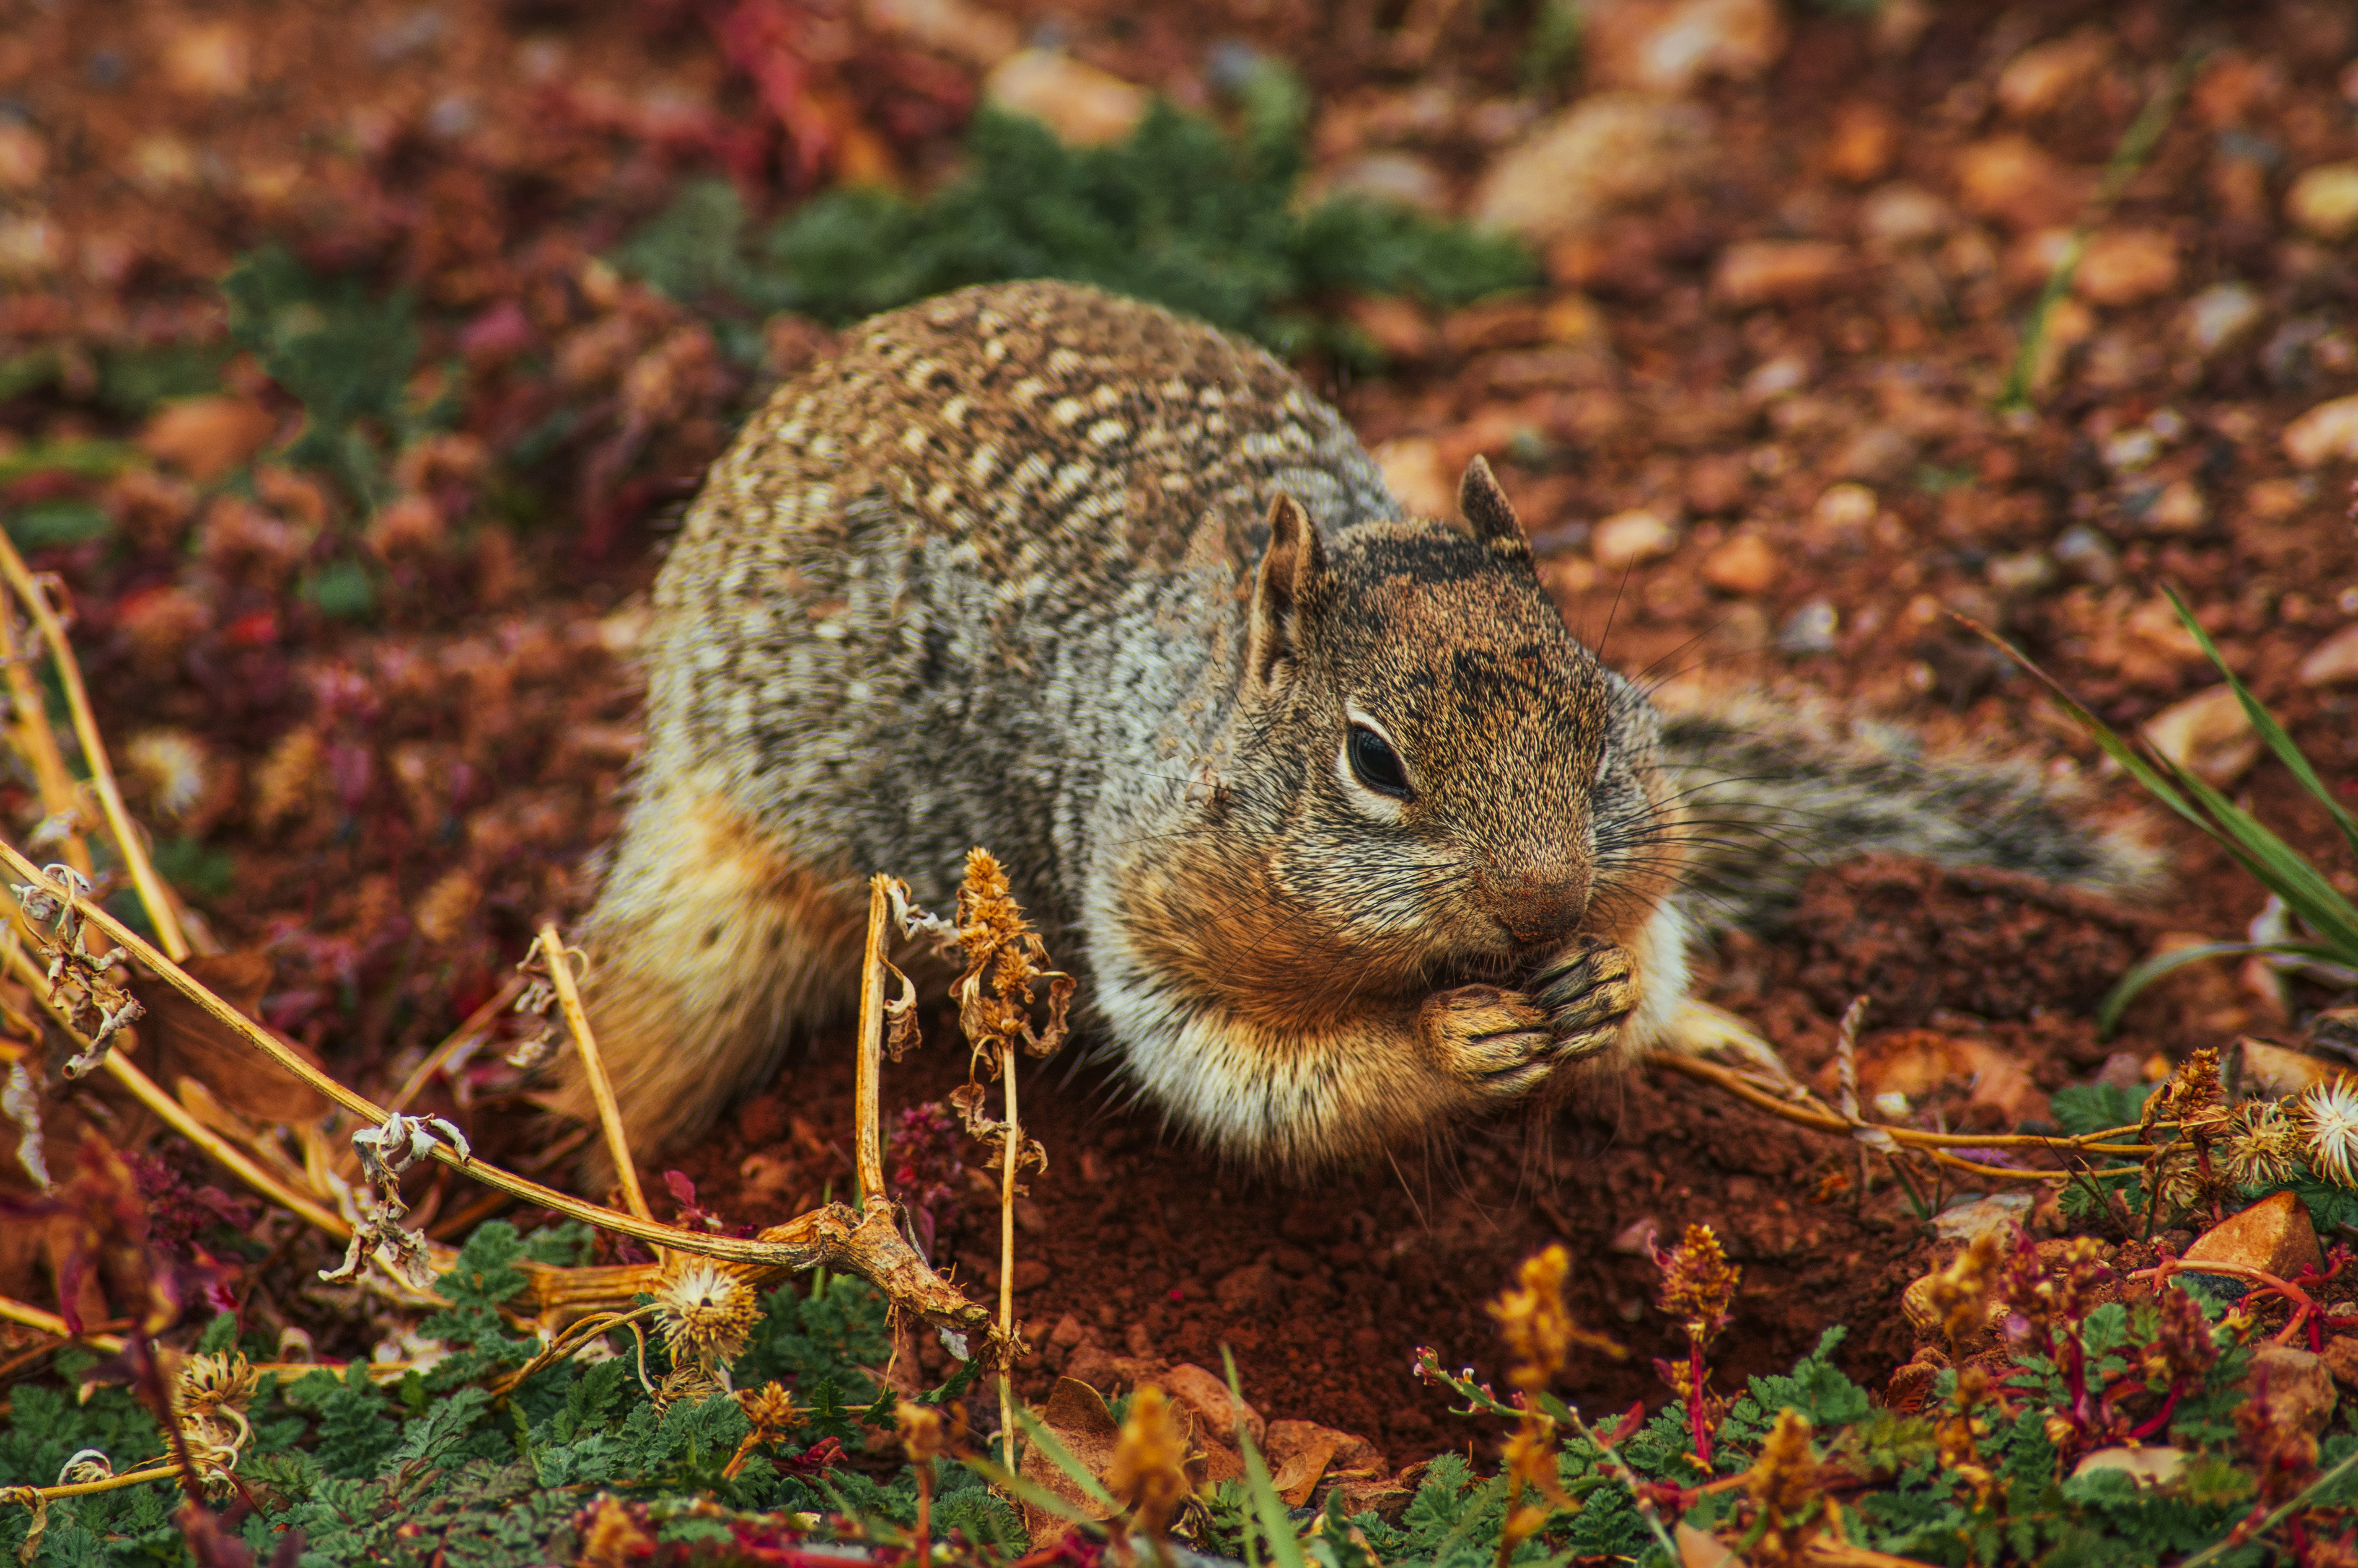 70048 download wallpaper Animals, Squirrel, Rodent, Land, Earth, Dig screensavers and pictures for free